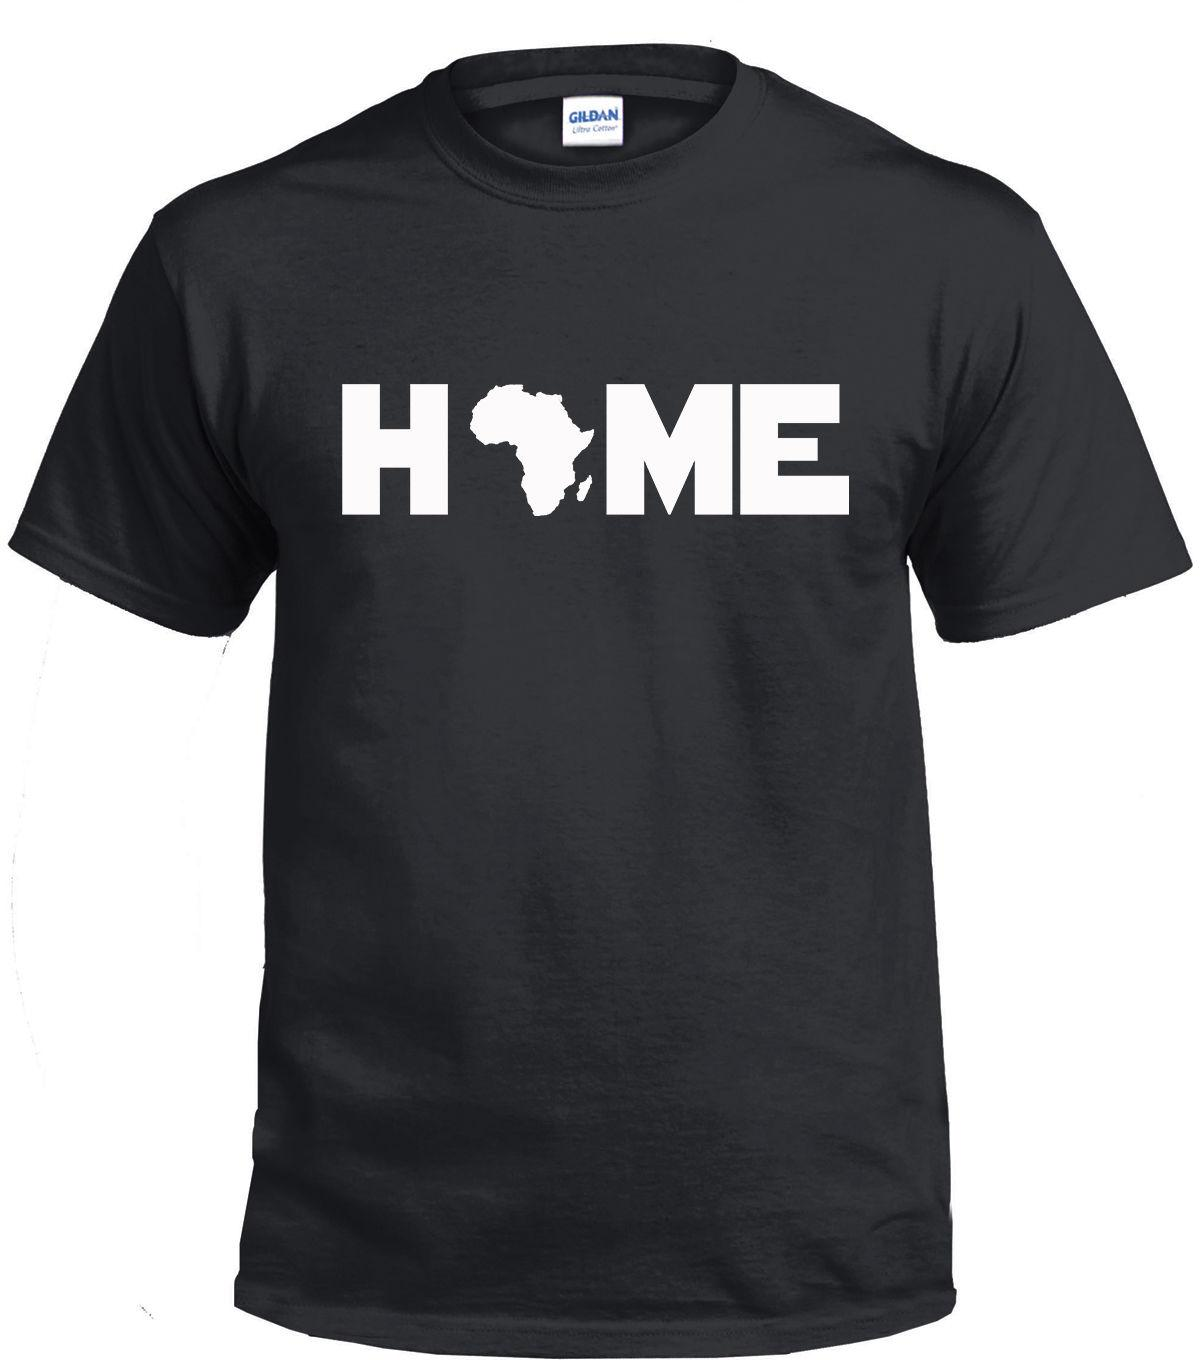 2018 Fashion Casual Men T Shirt Home Africa Black Lives Matter African  Pride Mens Womens Black Gray T Shirt Tshirt White T Shirt Design T Shirt  Deals From ...